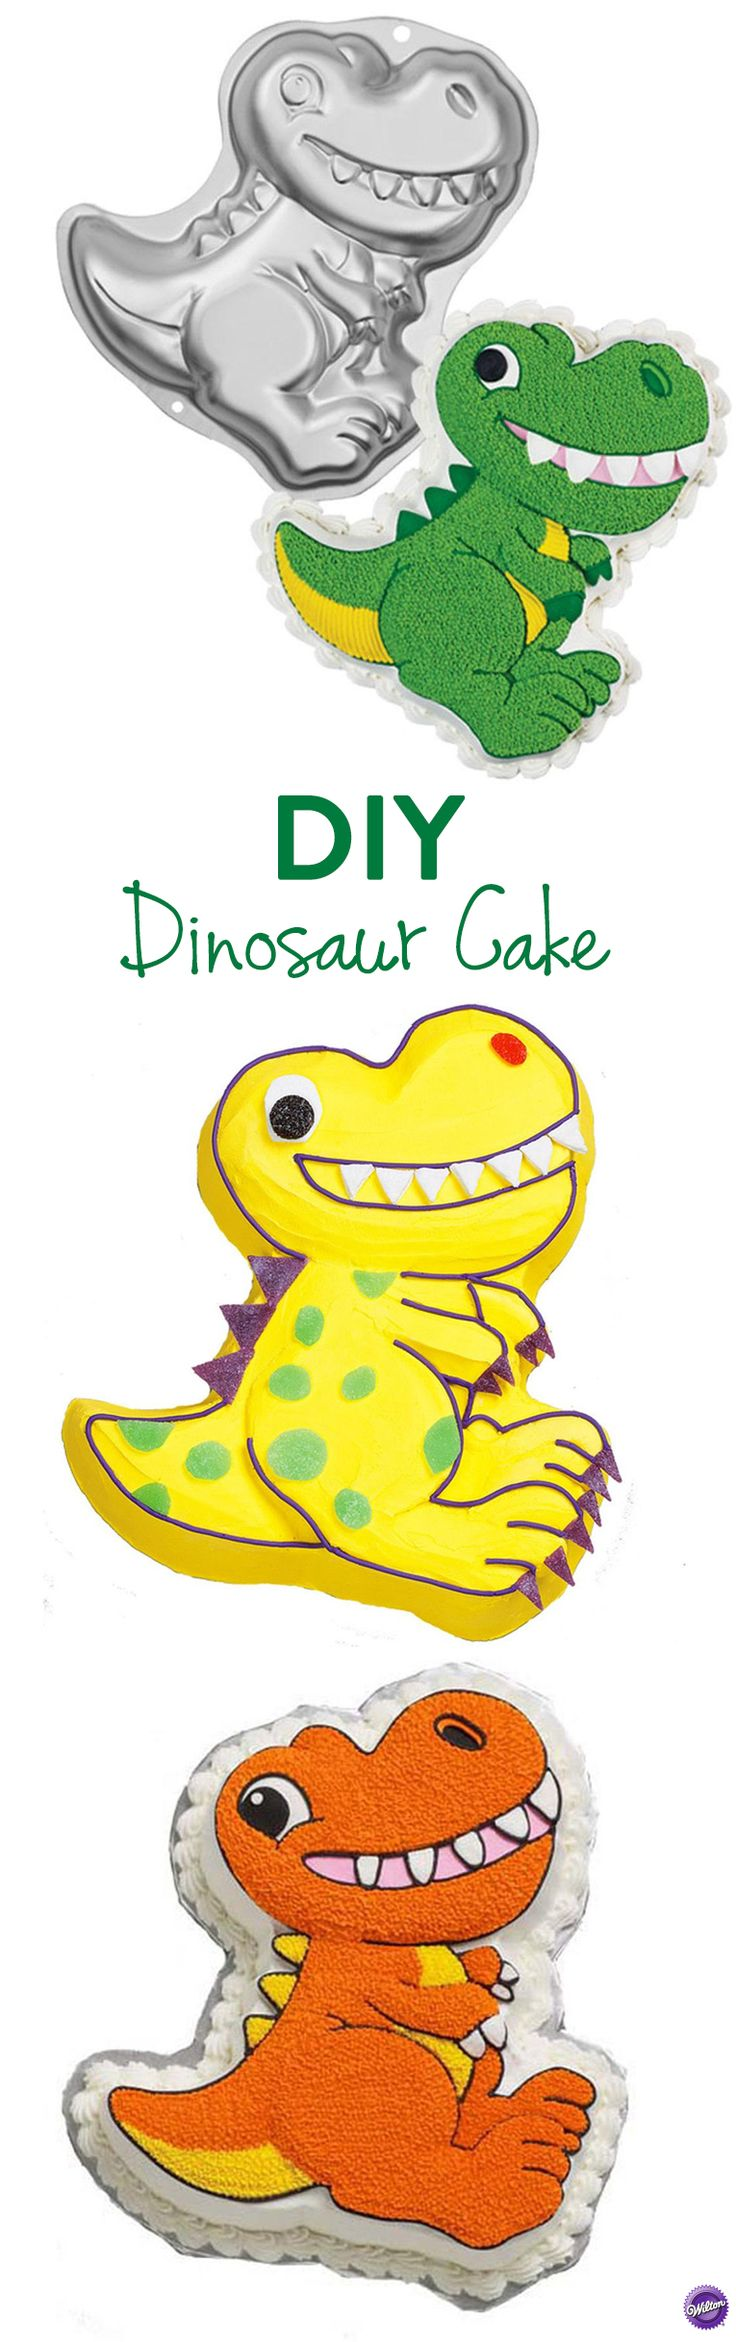 DIY Dinosaur Cake - Using the Wilton dinosaur pan, make your own dinosaur cake that's just right for kids birthdays, school functions and animal-themed celebrations. The one-mix pan is 12.75 x 11 x 2 in. deep.